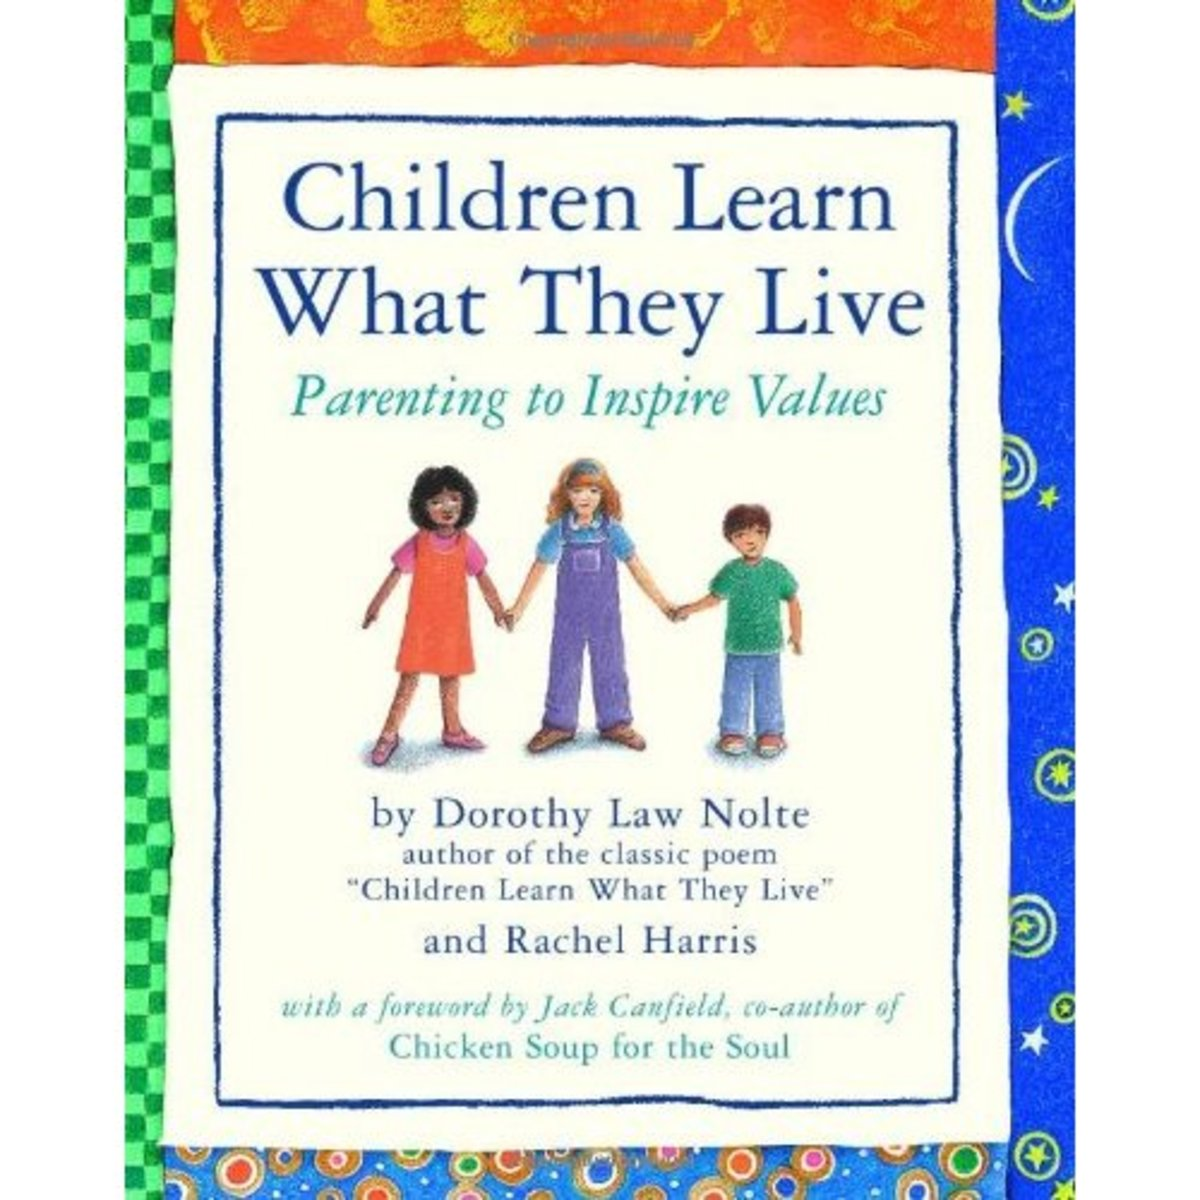 Children Learn What They Live by Dorothy Law Nolte Ph.D. (Author) and Rachel Harris L.C.S.W. Ph.D. (Co-Author)